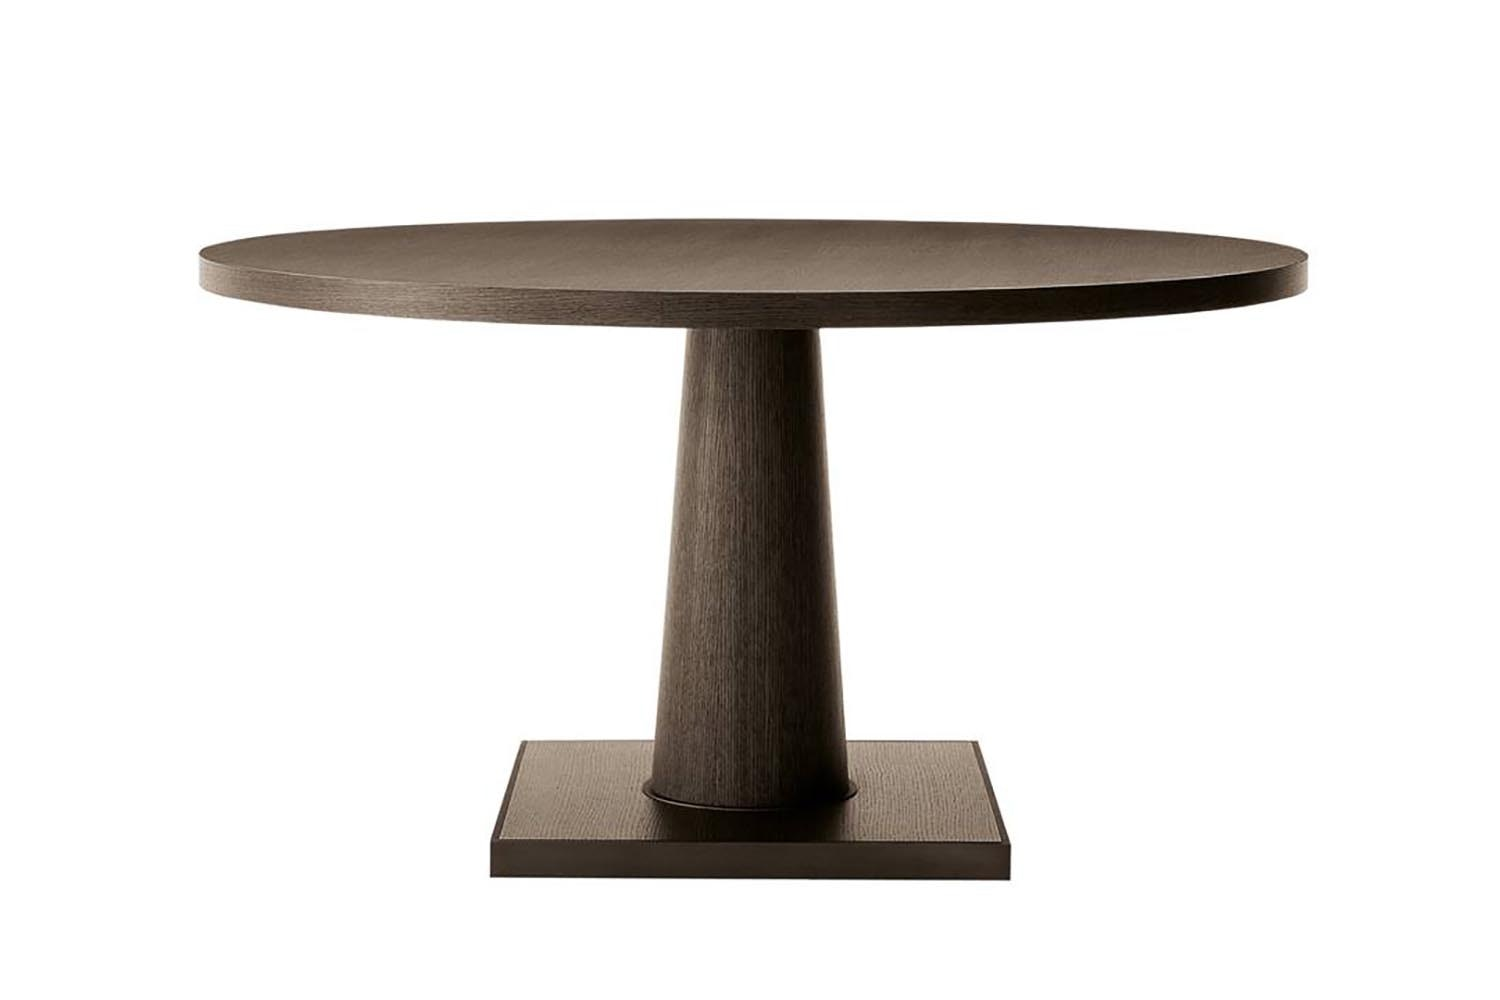 Convivio Table by Antonio Citterio for Maxalto